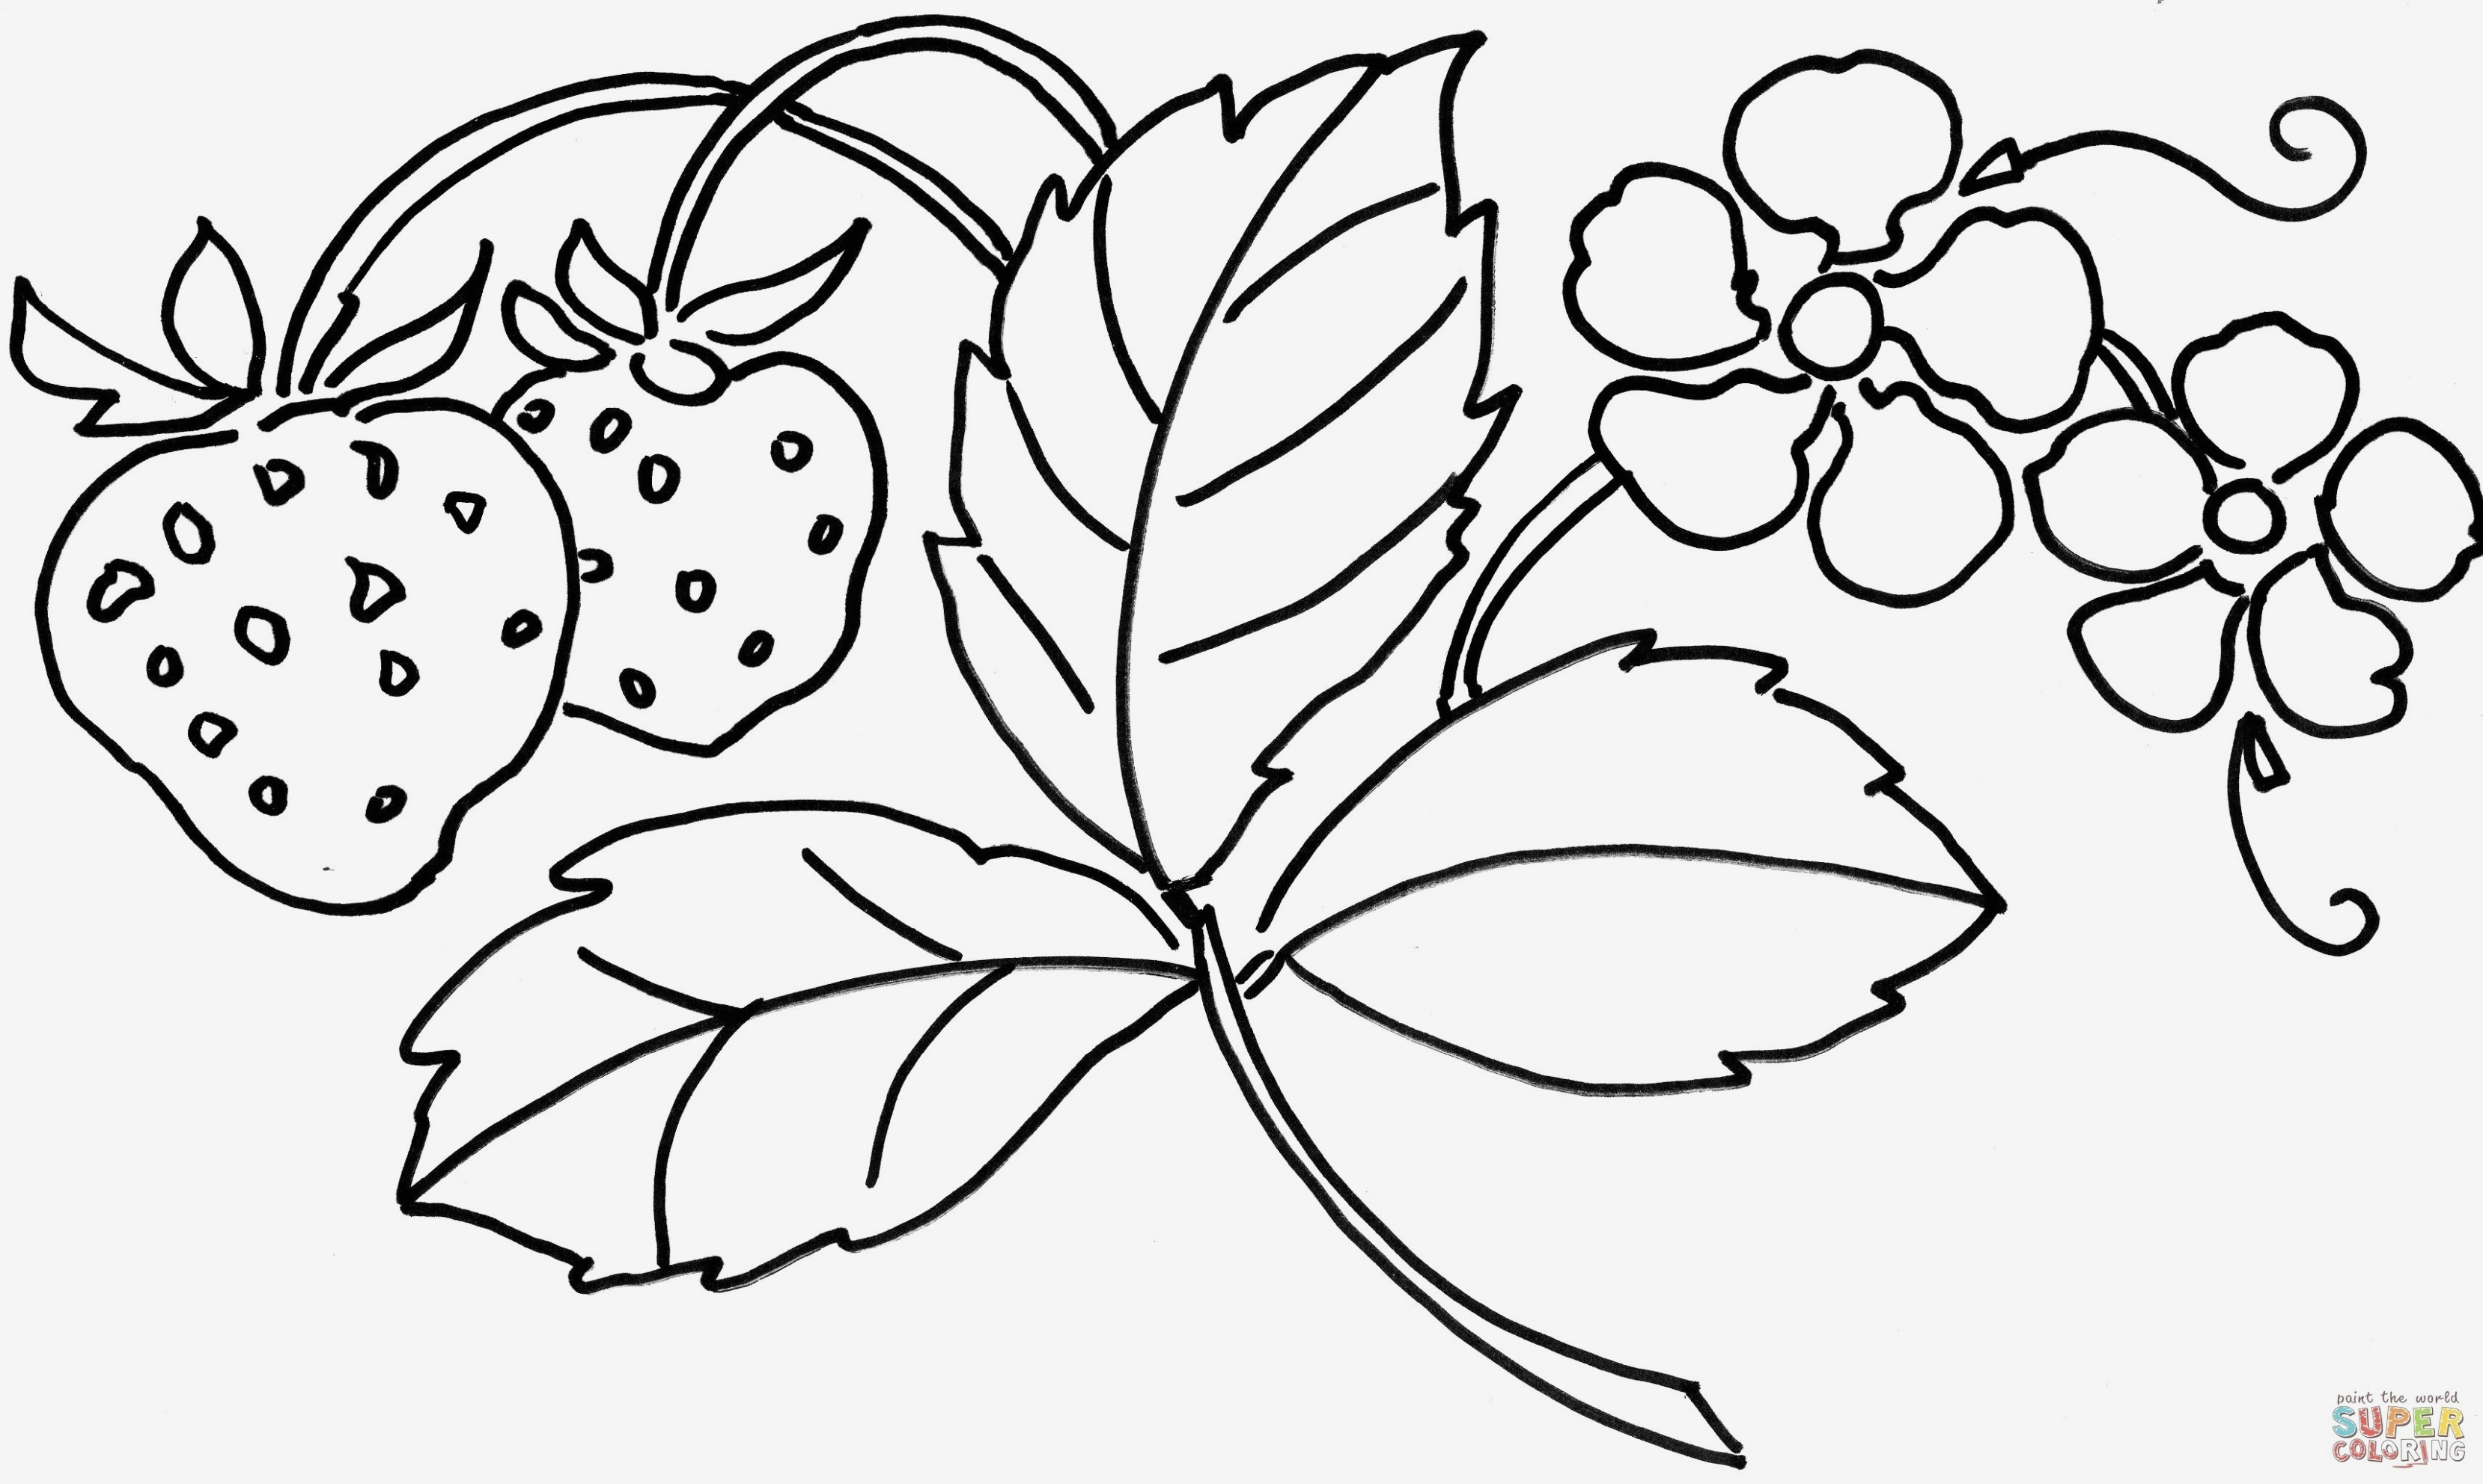 Bike Coloring Pages Free Printable where to Buy Coloring Books ..